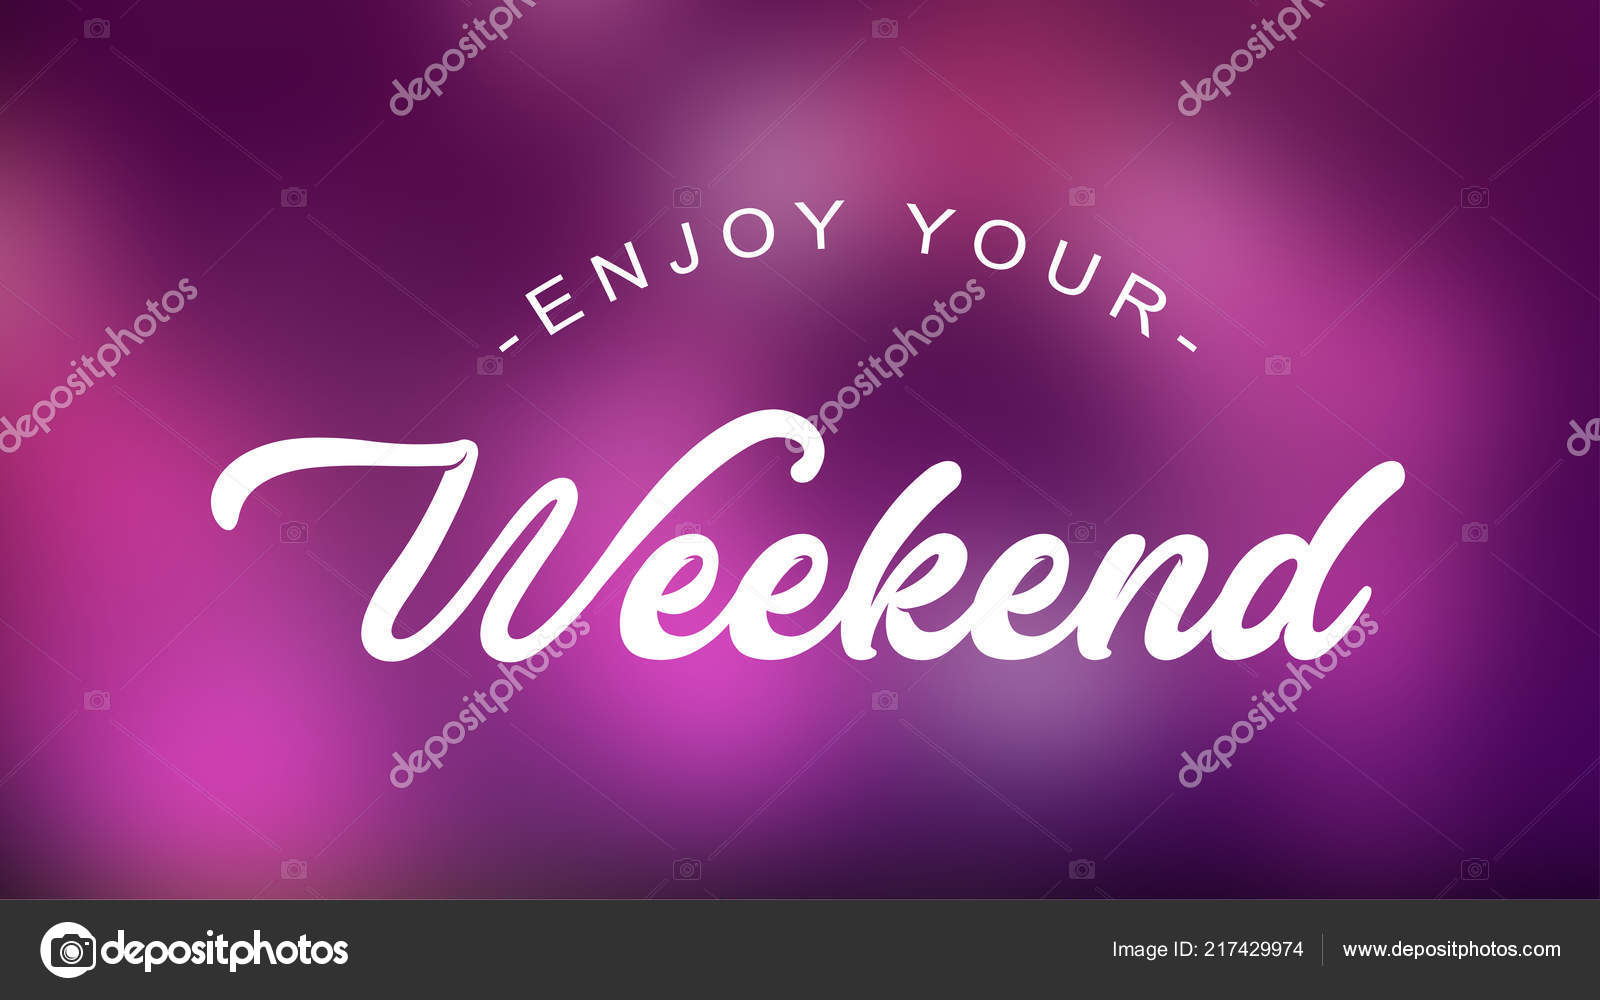 Enjoy Your Weekend Quote Elegant Background Stock Vector